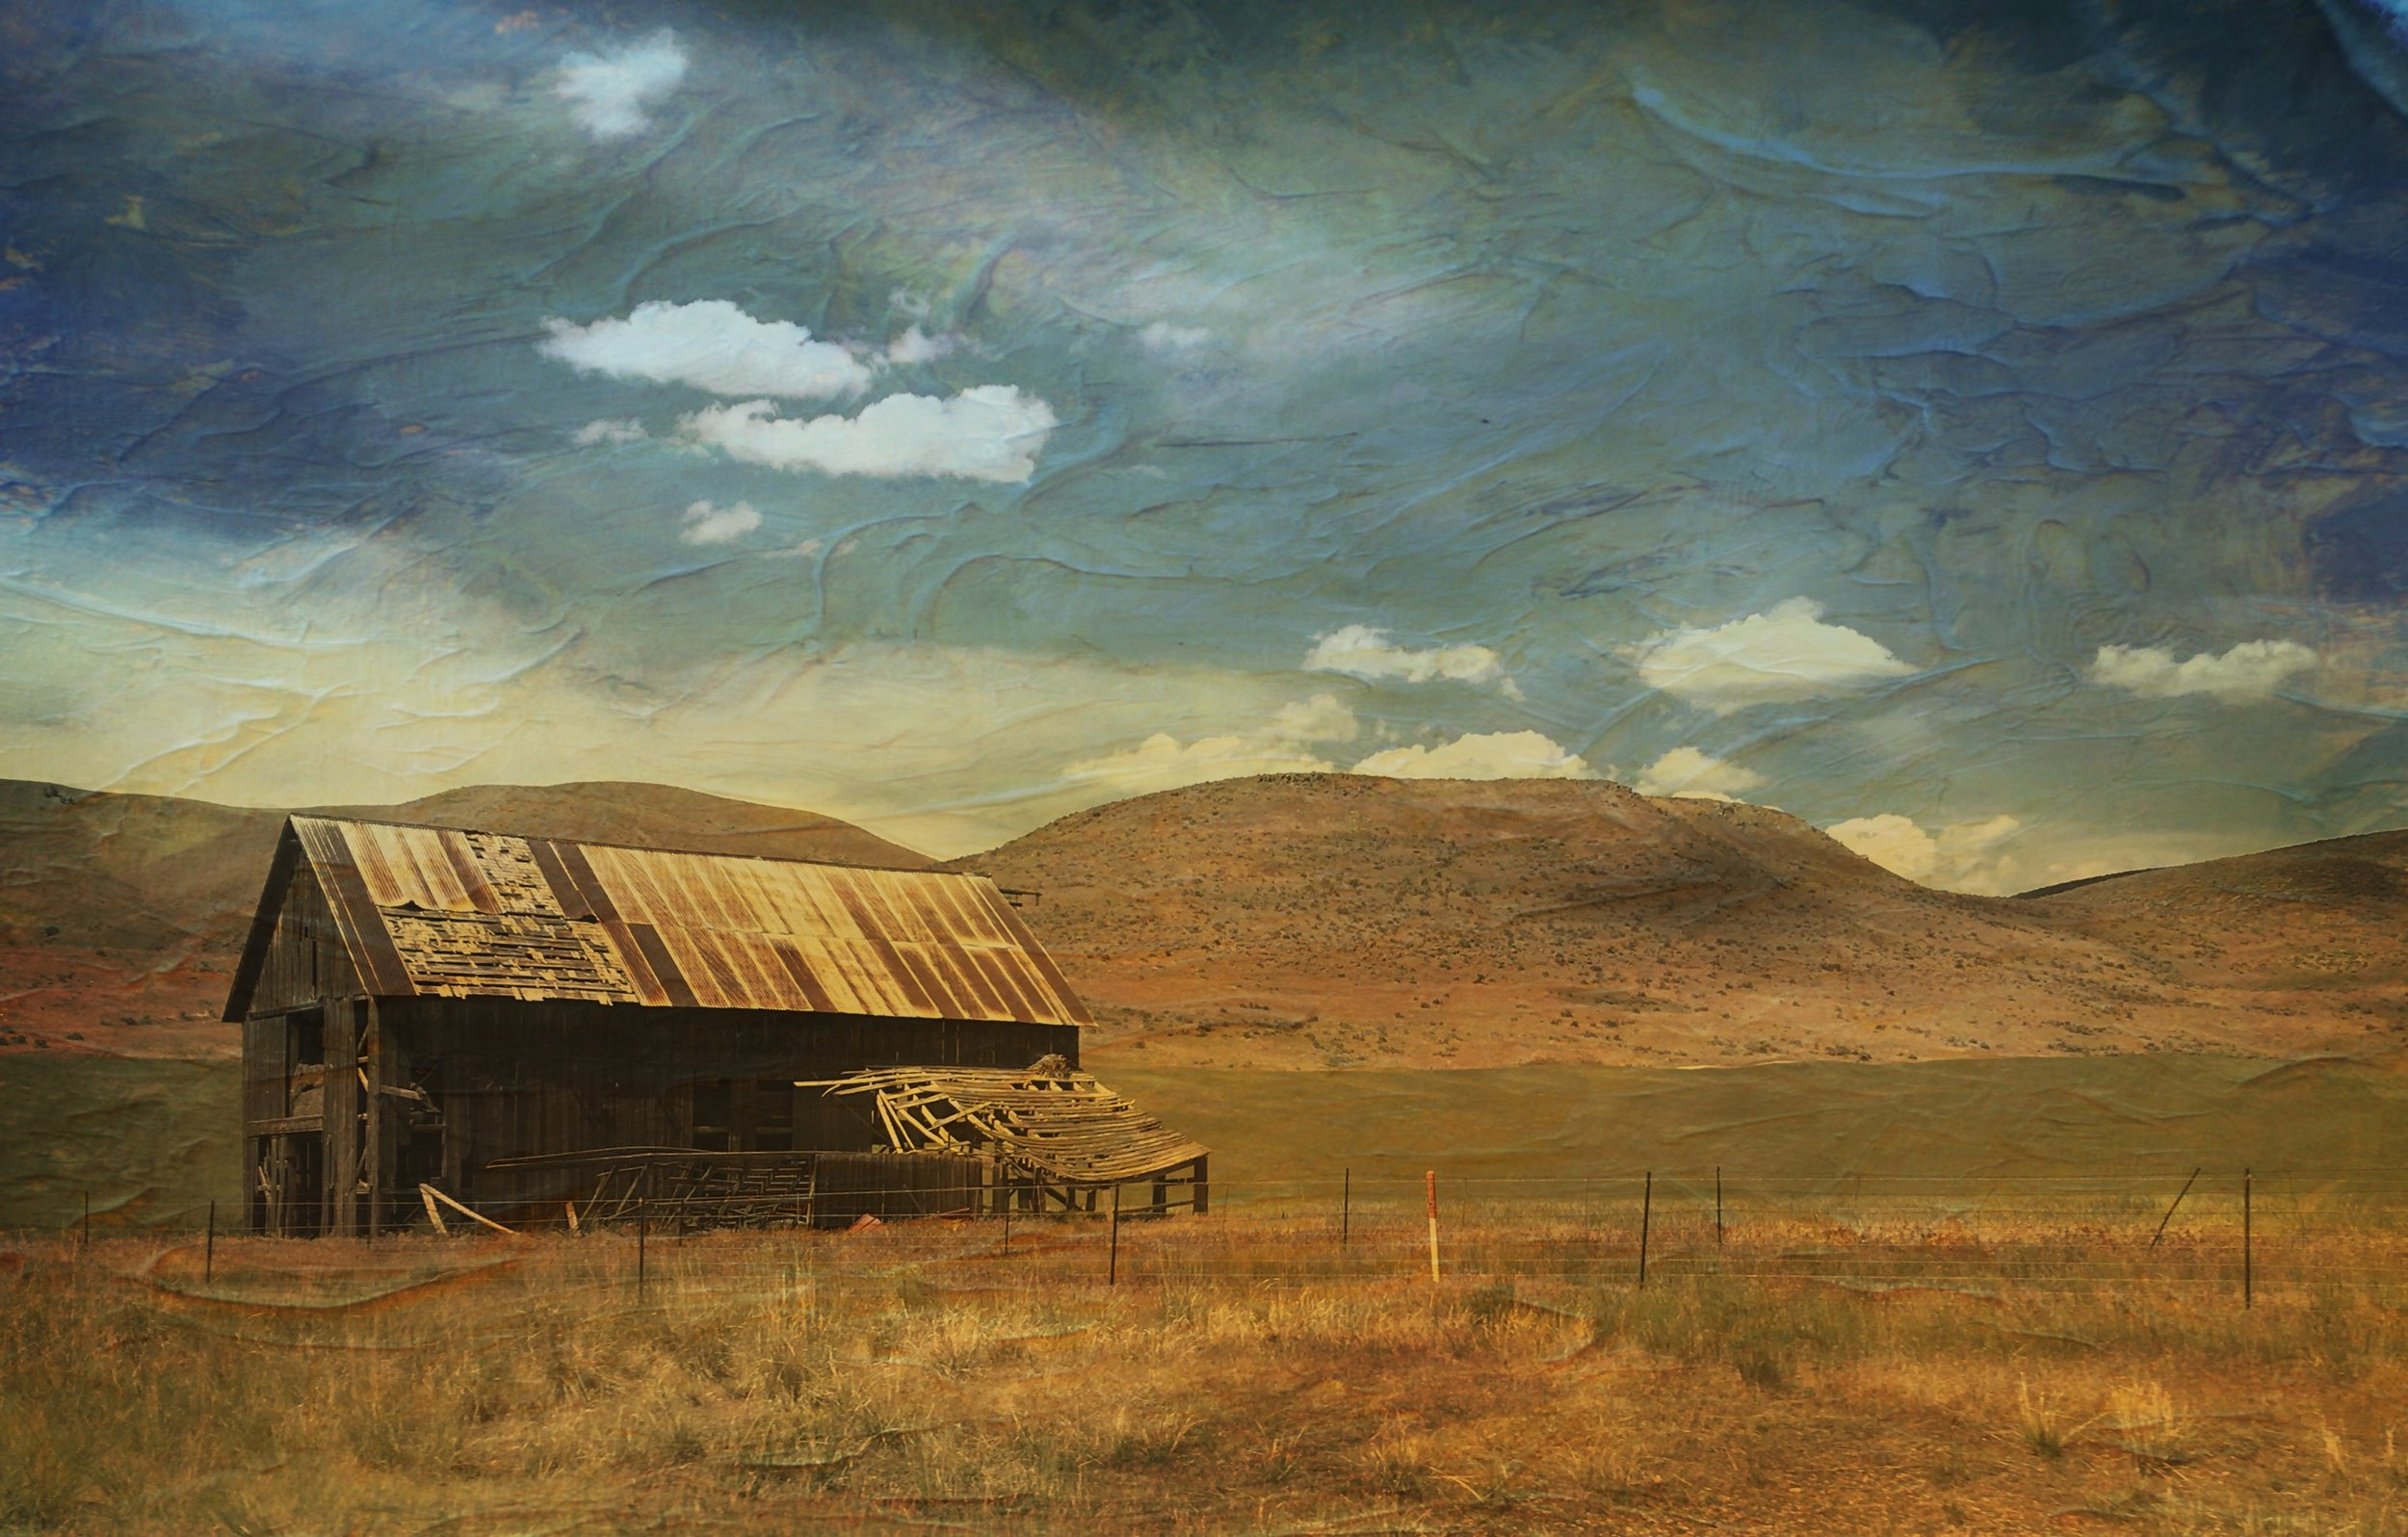 Out West - IPhone photo, processed with DistressedFX